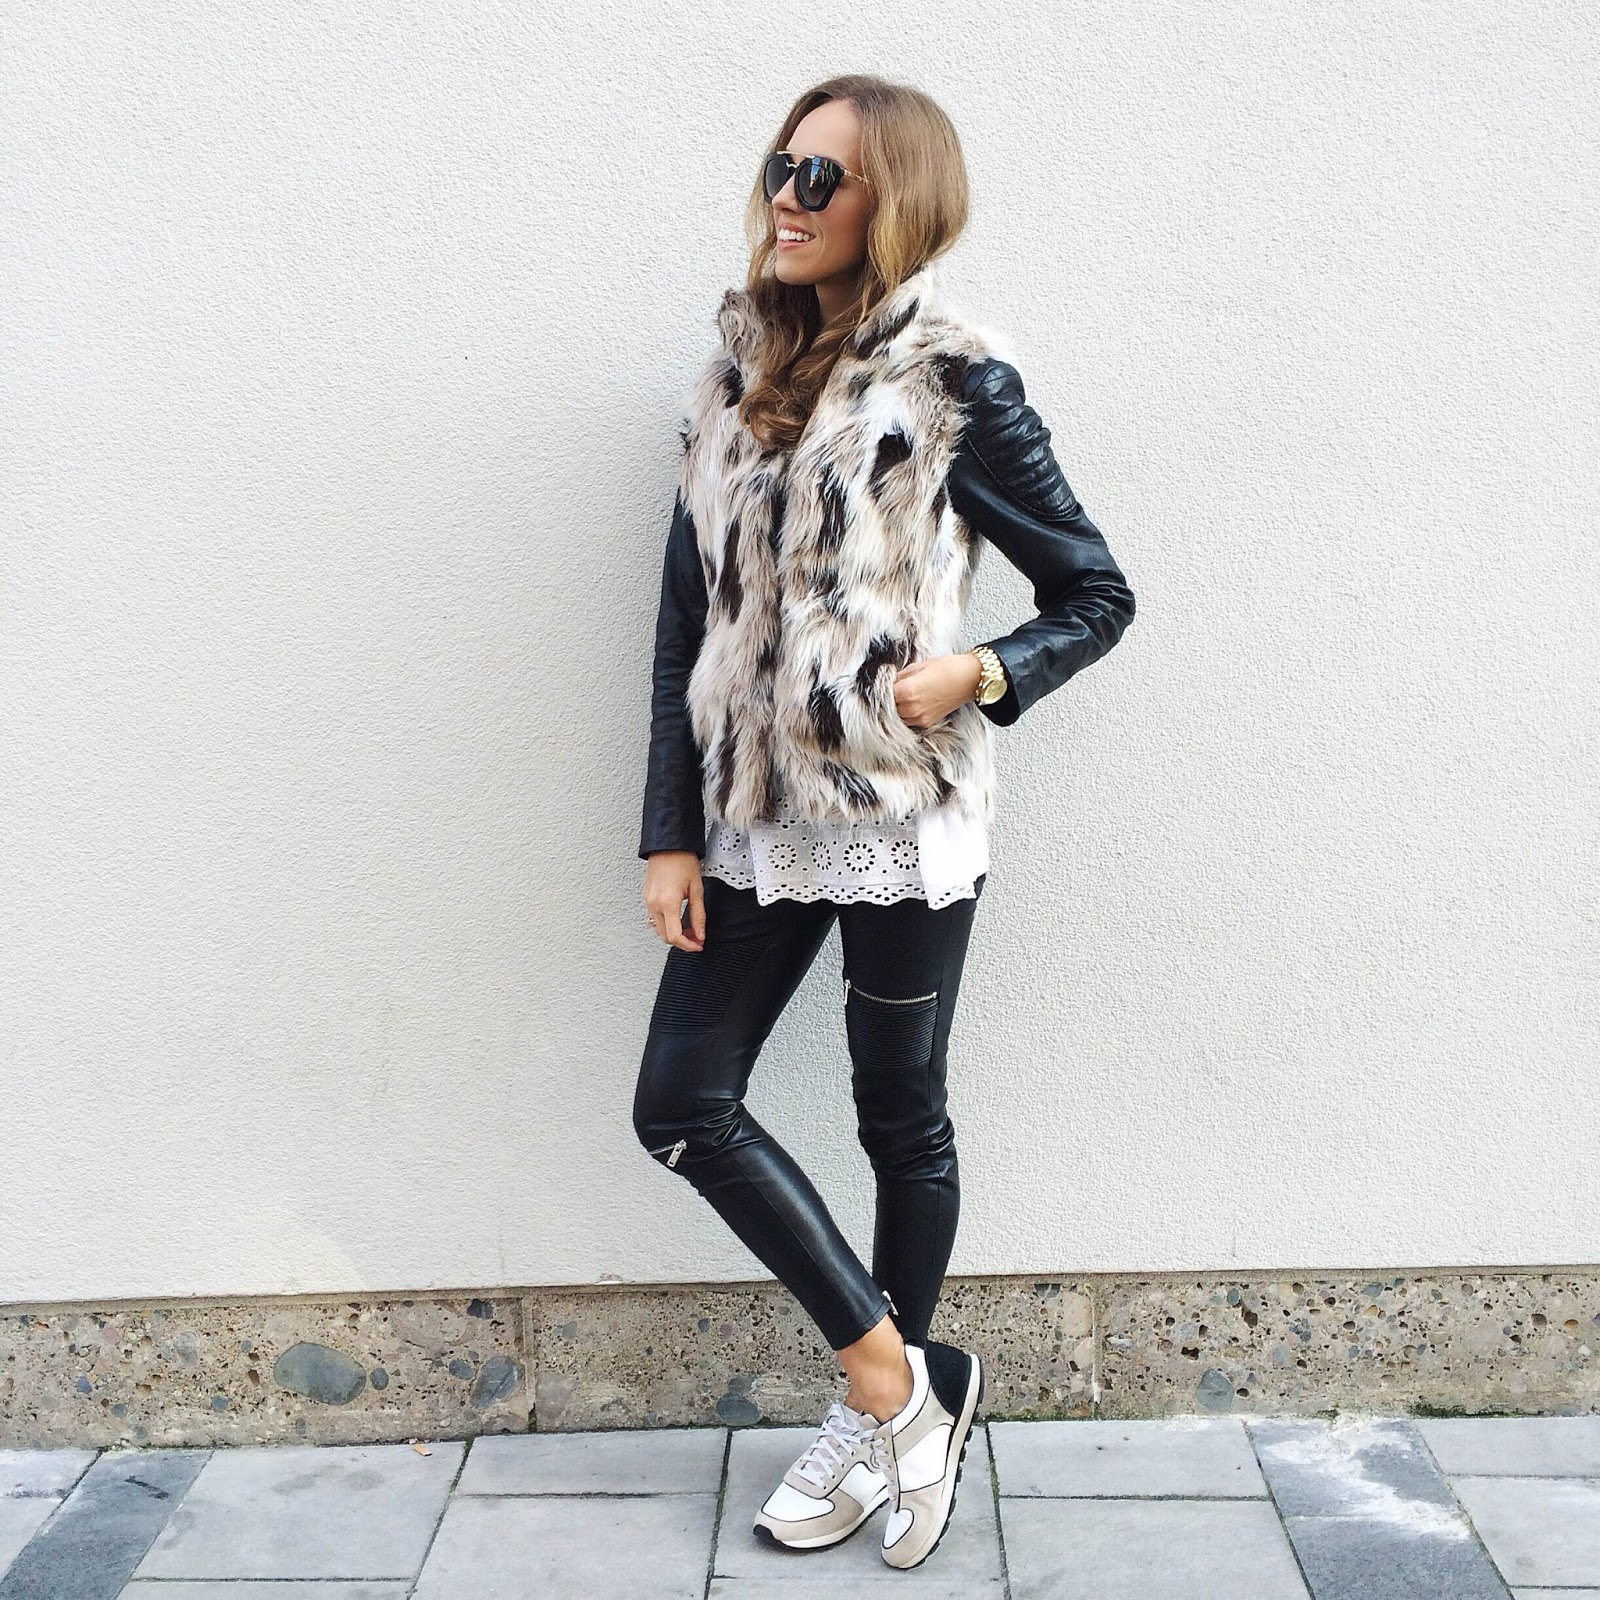 kristjaana mere fur vest leather pants white sneakers casual fall winter outfit